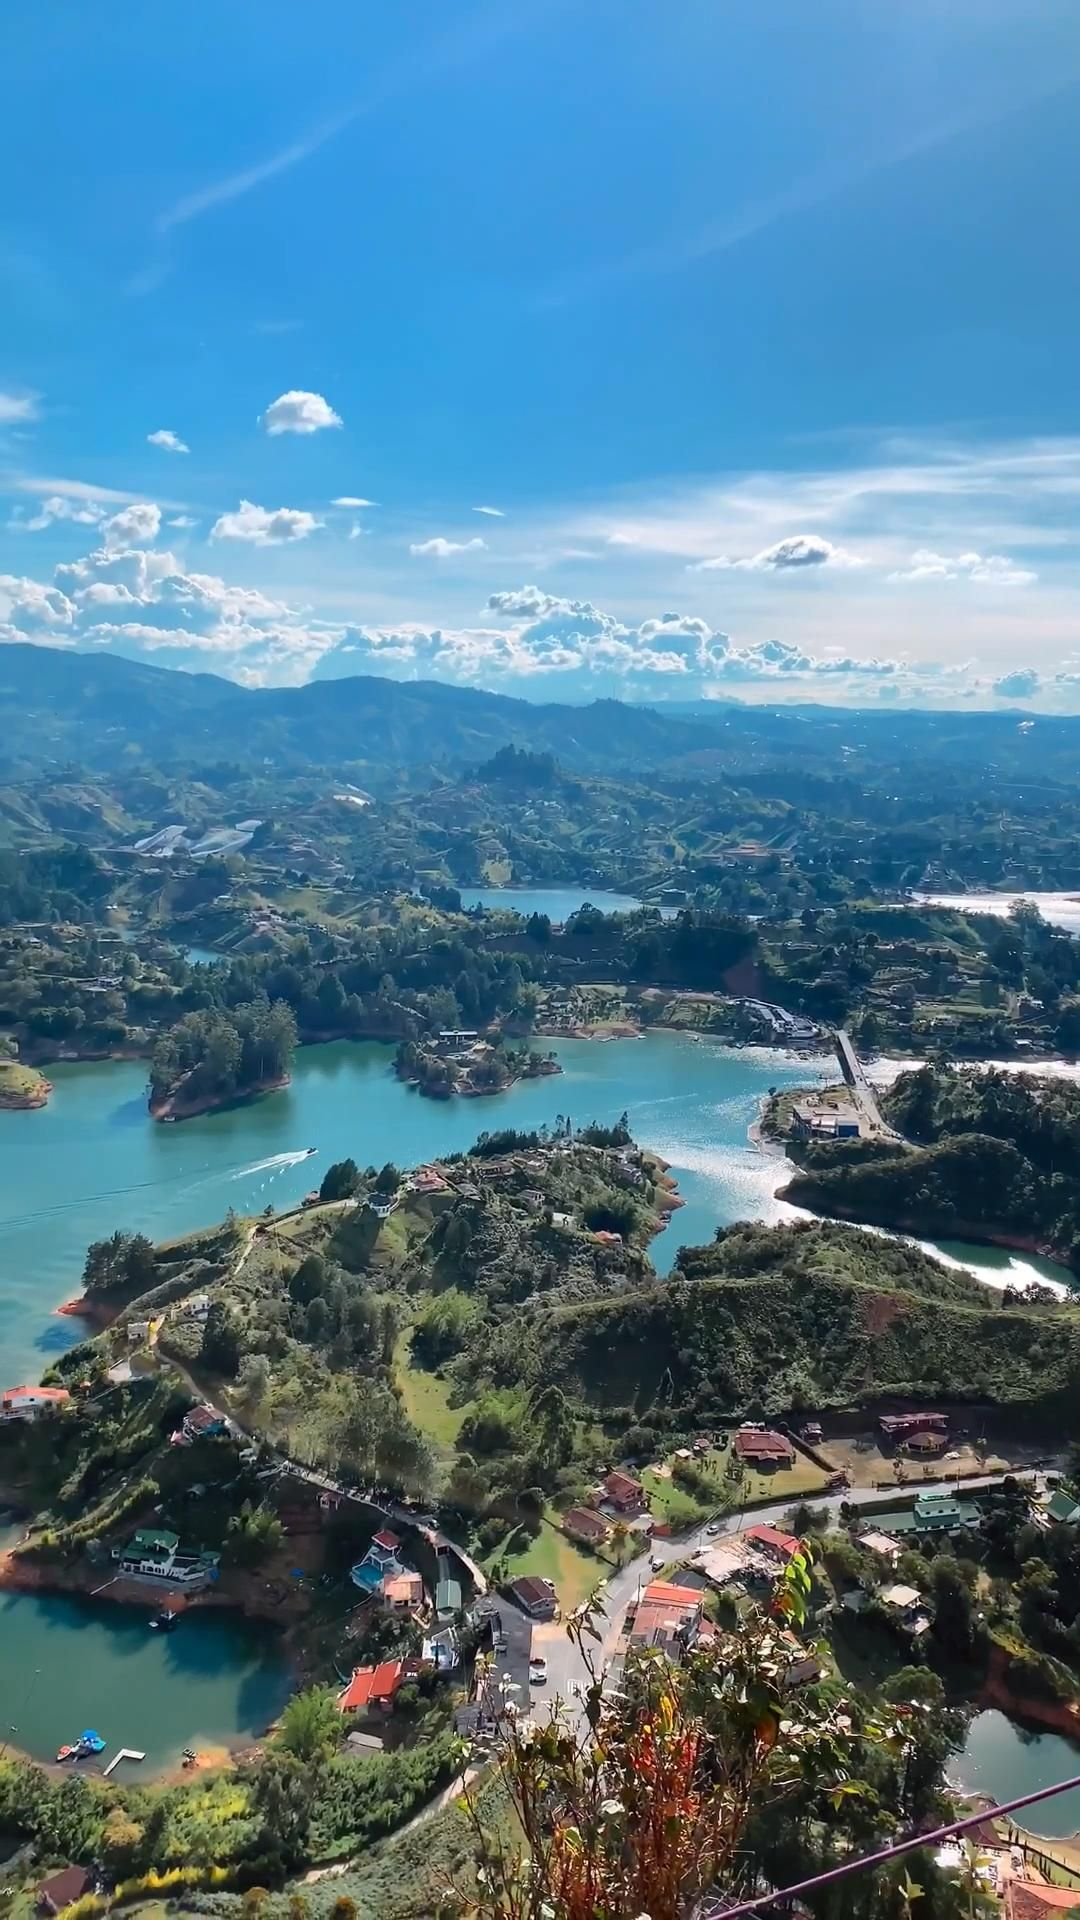 The Best Things to do in Guatape Colombia! Add this place to your South America bucket list! You won't regret it.